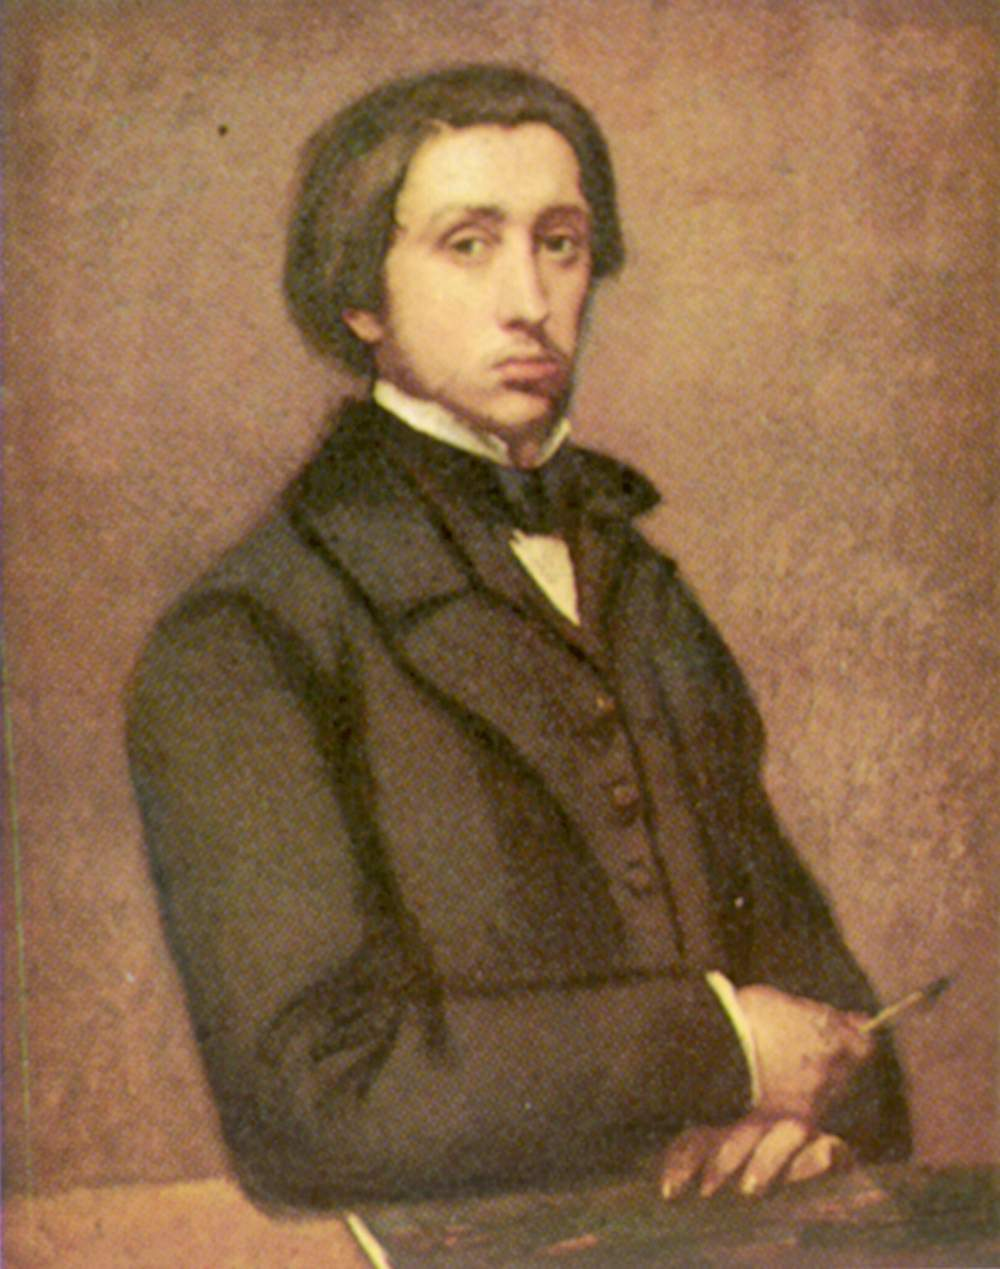 http://upload.wikimedia.org/wikipedia/commons/4/41/Edgar_Germain_Hilaire_Degas_061.jpg